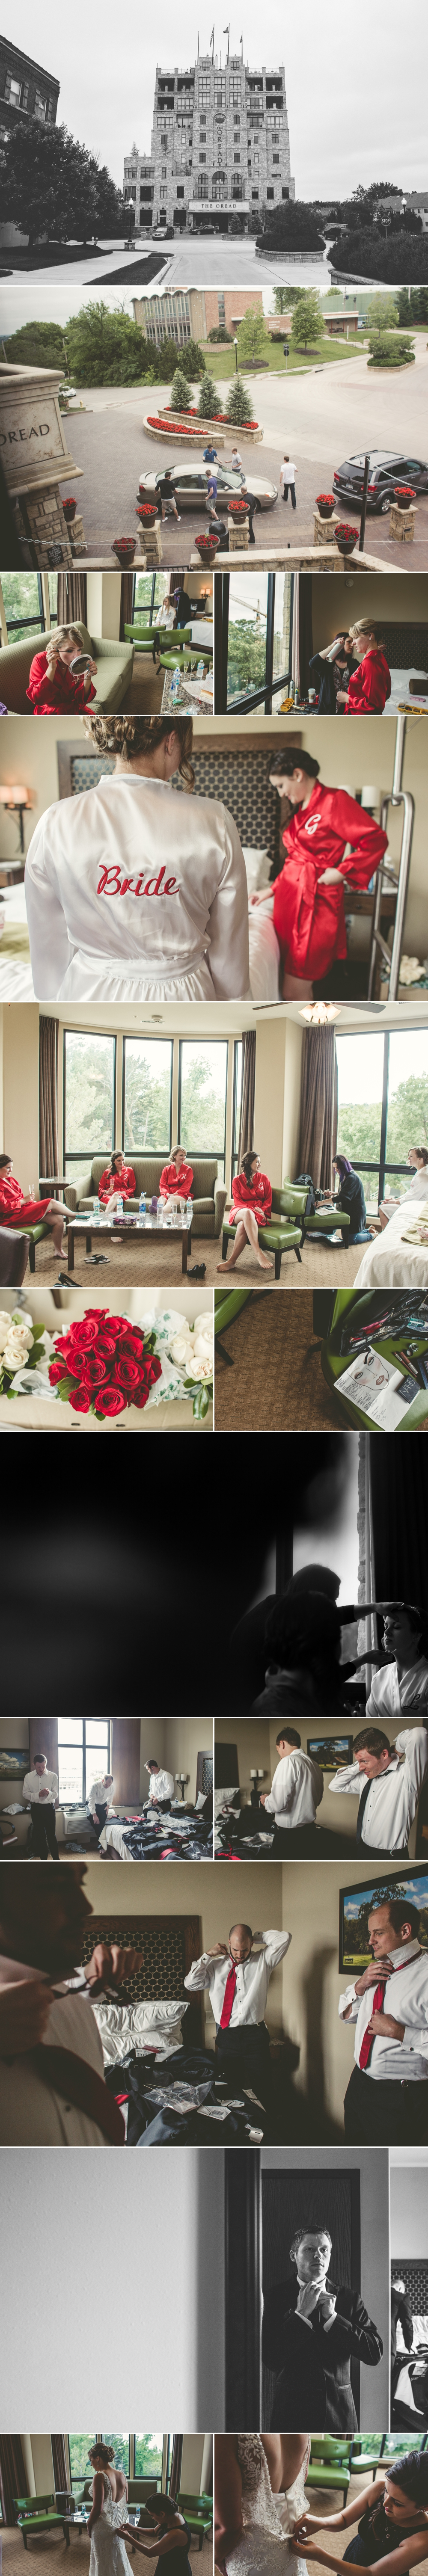 jason_domingues_photography_wedding_best_photographer_kansas_city_kc_lawrence_ks_oread_hotel_creative_documentary_0001